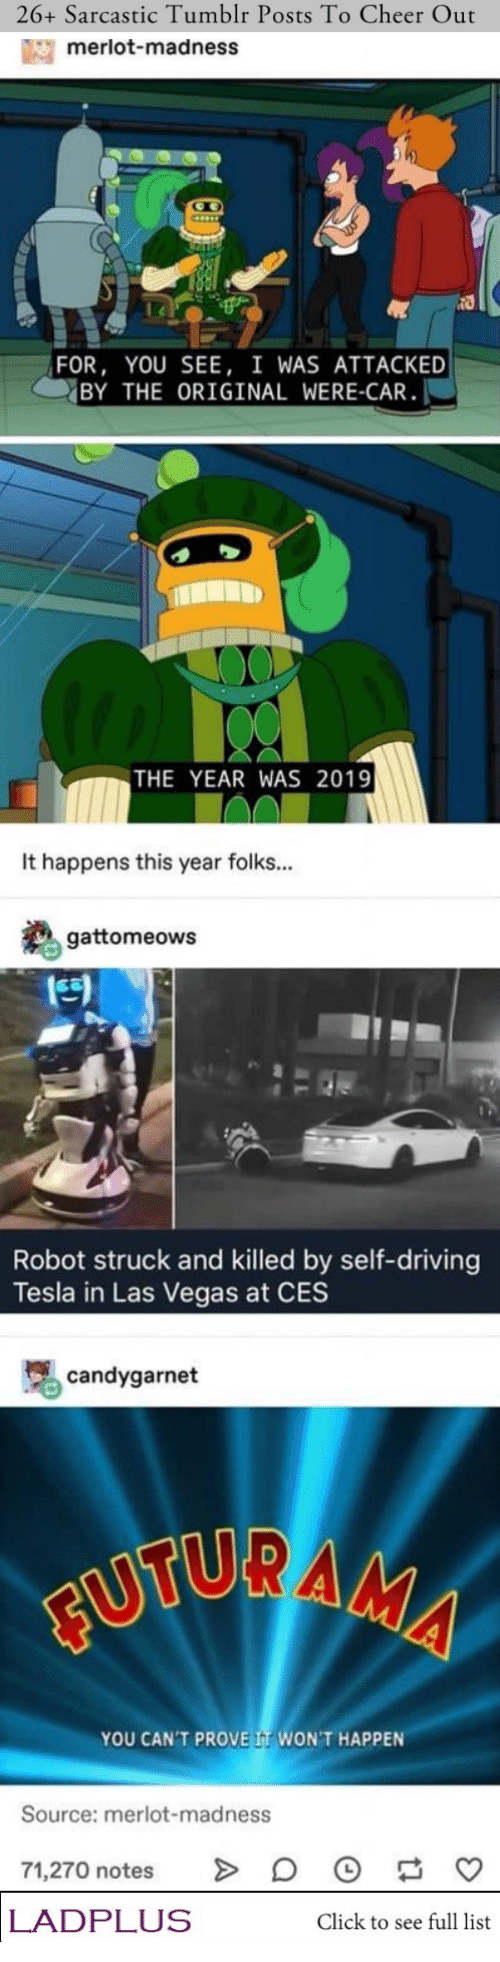 Click, Driving, and Tumblr: 26+ Sarcastic Tumblr Posts To Cheer Out  merlot-madness  FOR, YOU SEE, I WAS ATTACKED  BY THE ORIGINAL WERE-CAR  THE YEAR WAS 2019  It happens this year folks...  gattomeows  Robot struck and killed by self-driving  Tesla in Las Vegas at CES  candygarnet  FUTURAMA  YOU CAN'T PROVE IT WON'T HAPPEN  Source: merlot-madness  71,270 notes  LADPLUS  Click to see full list